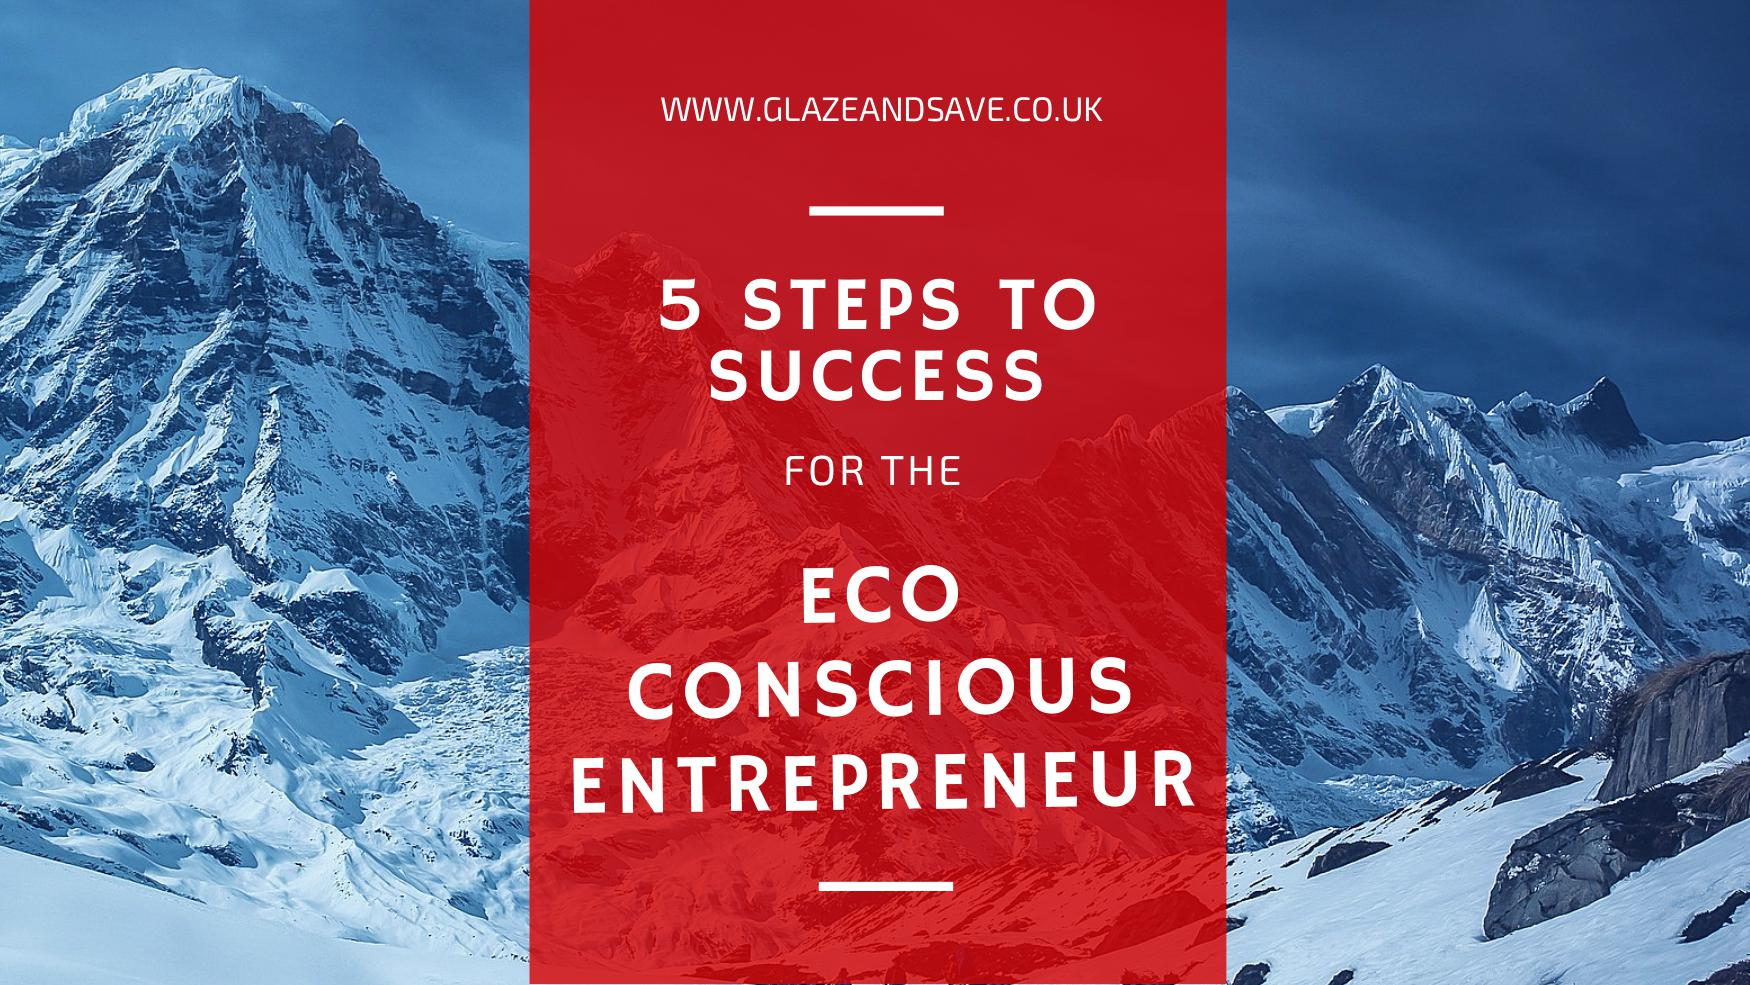 5 steps to success for the eco conscious entrepreneur. Glaze and Save magnetic secondary glazing and draught proofing systems based in Perth, Scotland.